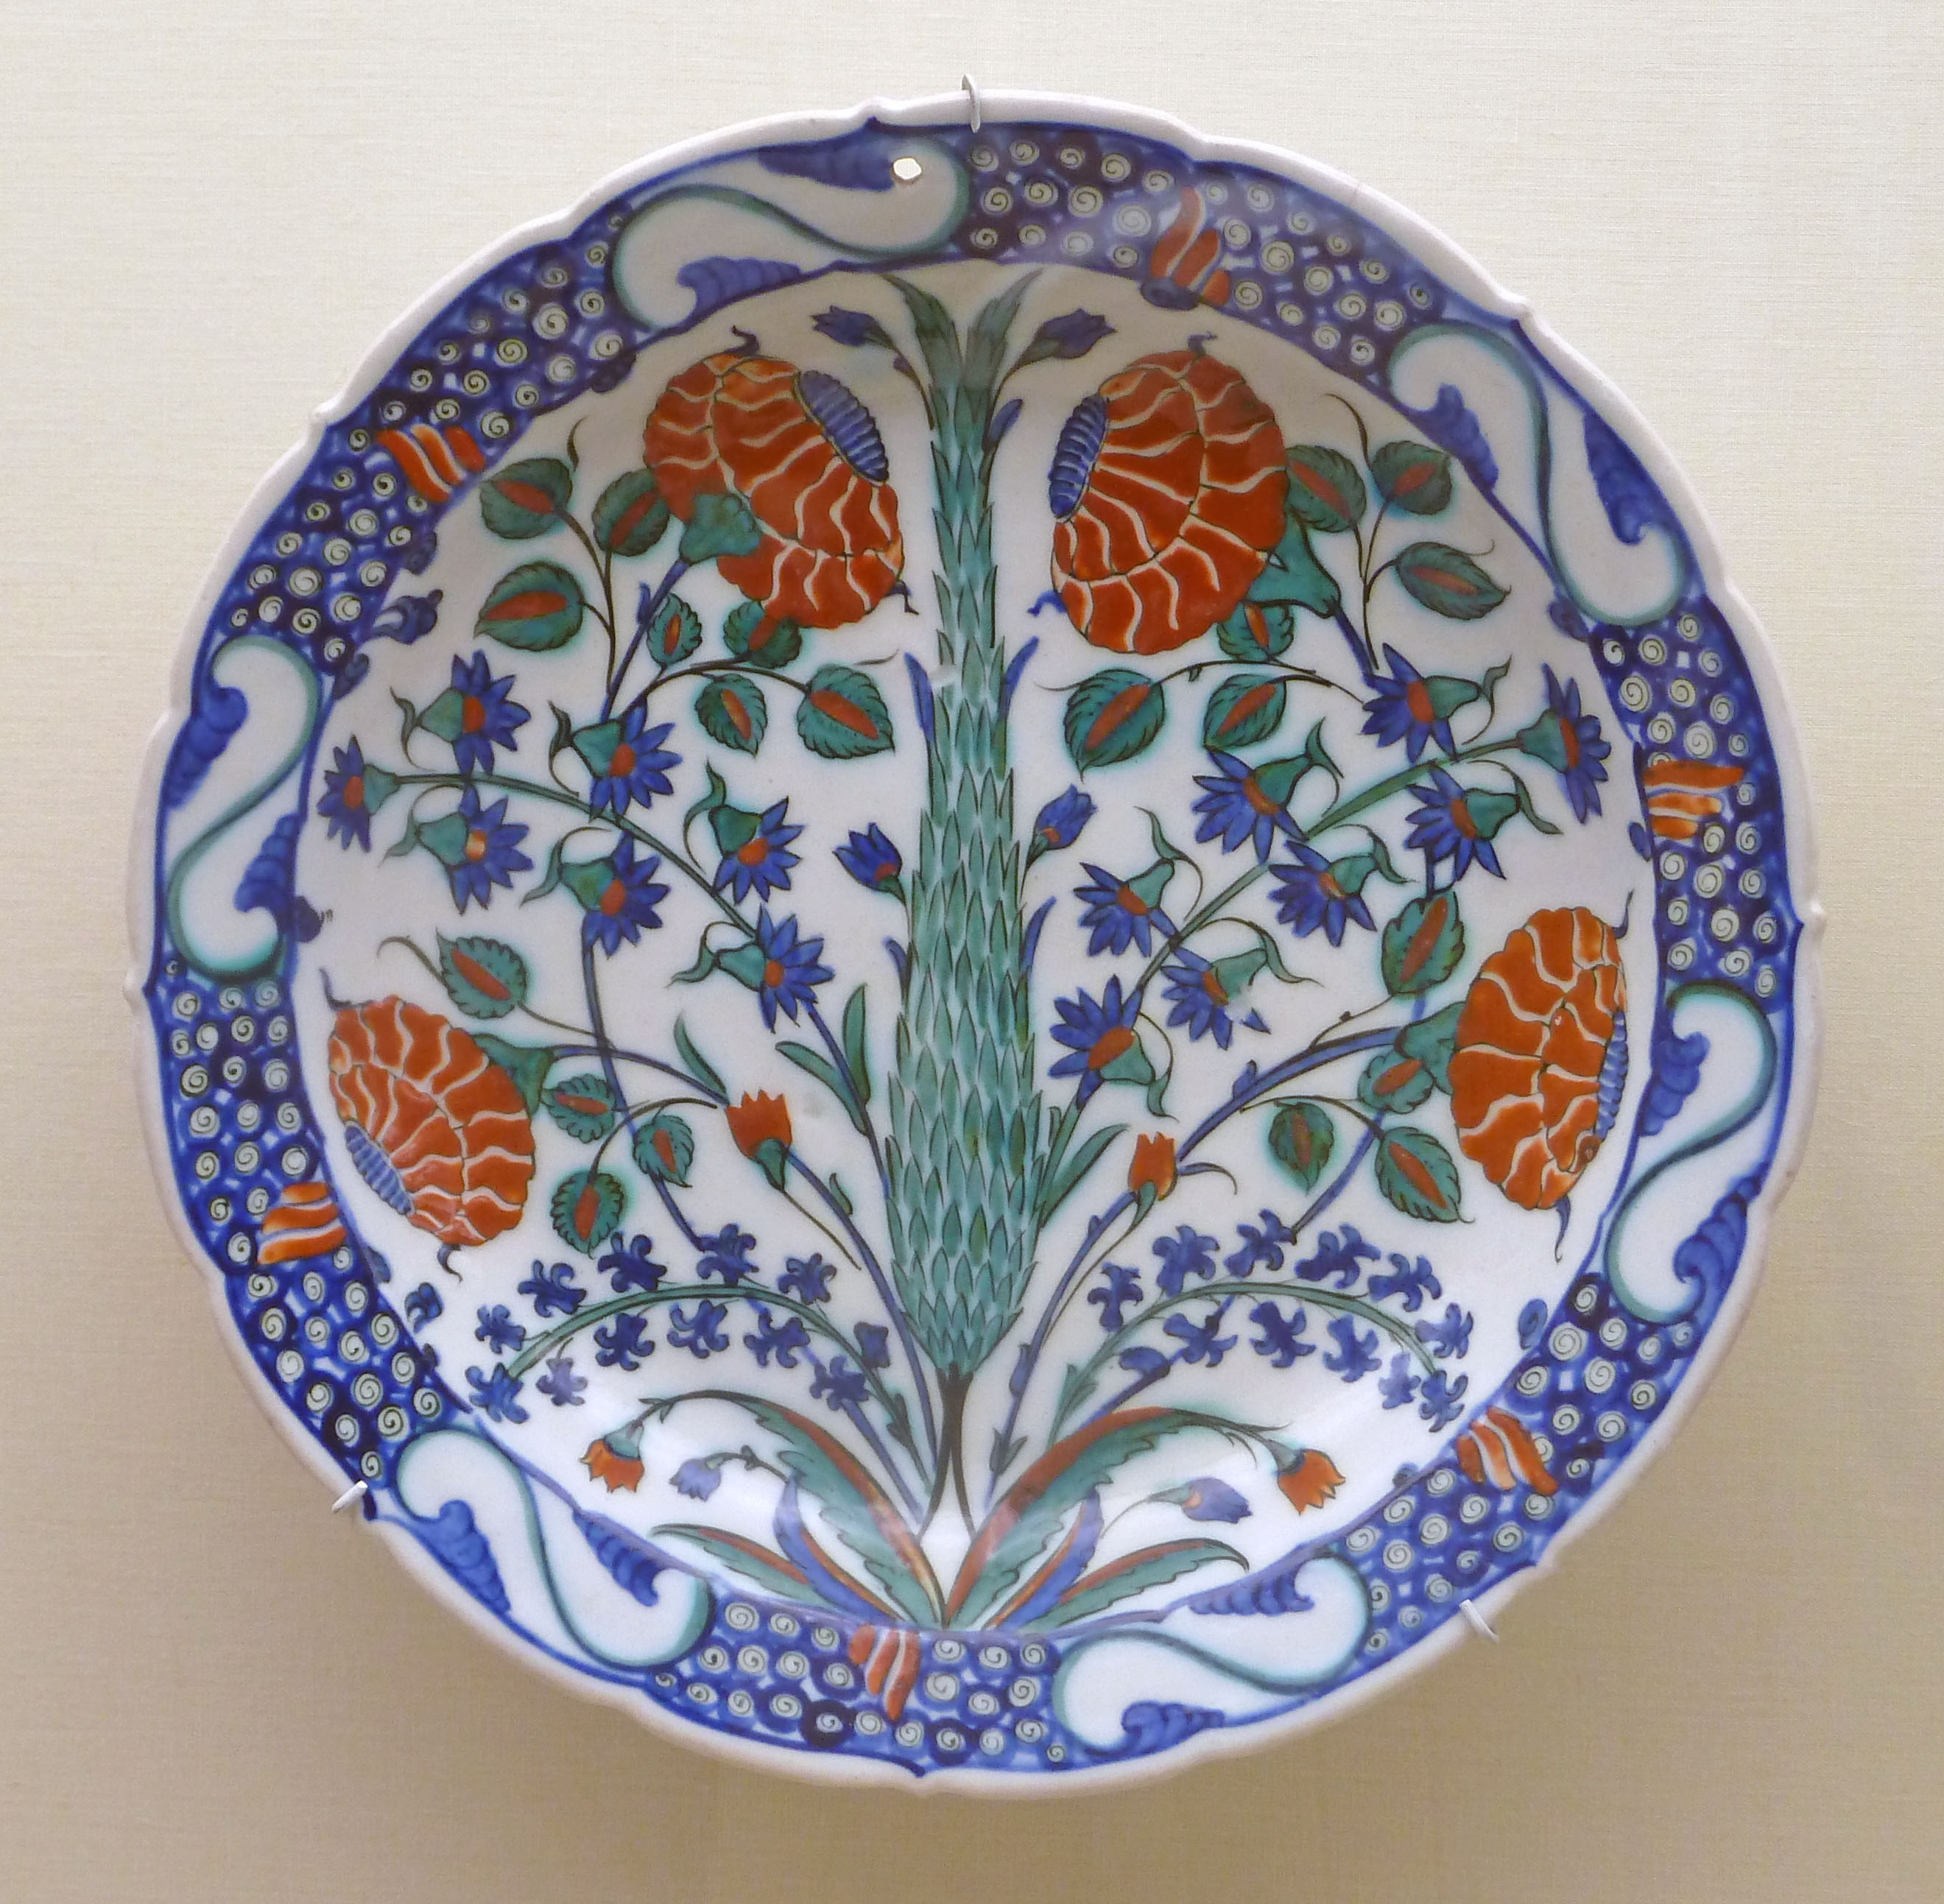 Arts N Crafts Ideas For Painting Pots Or Dishes